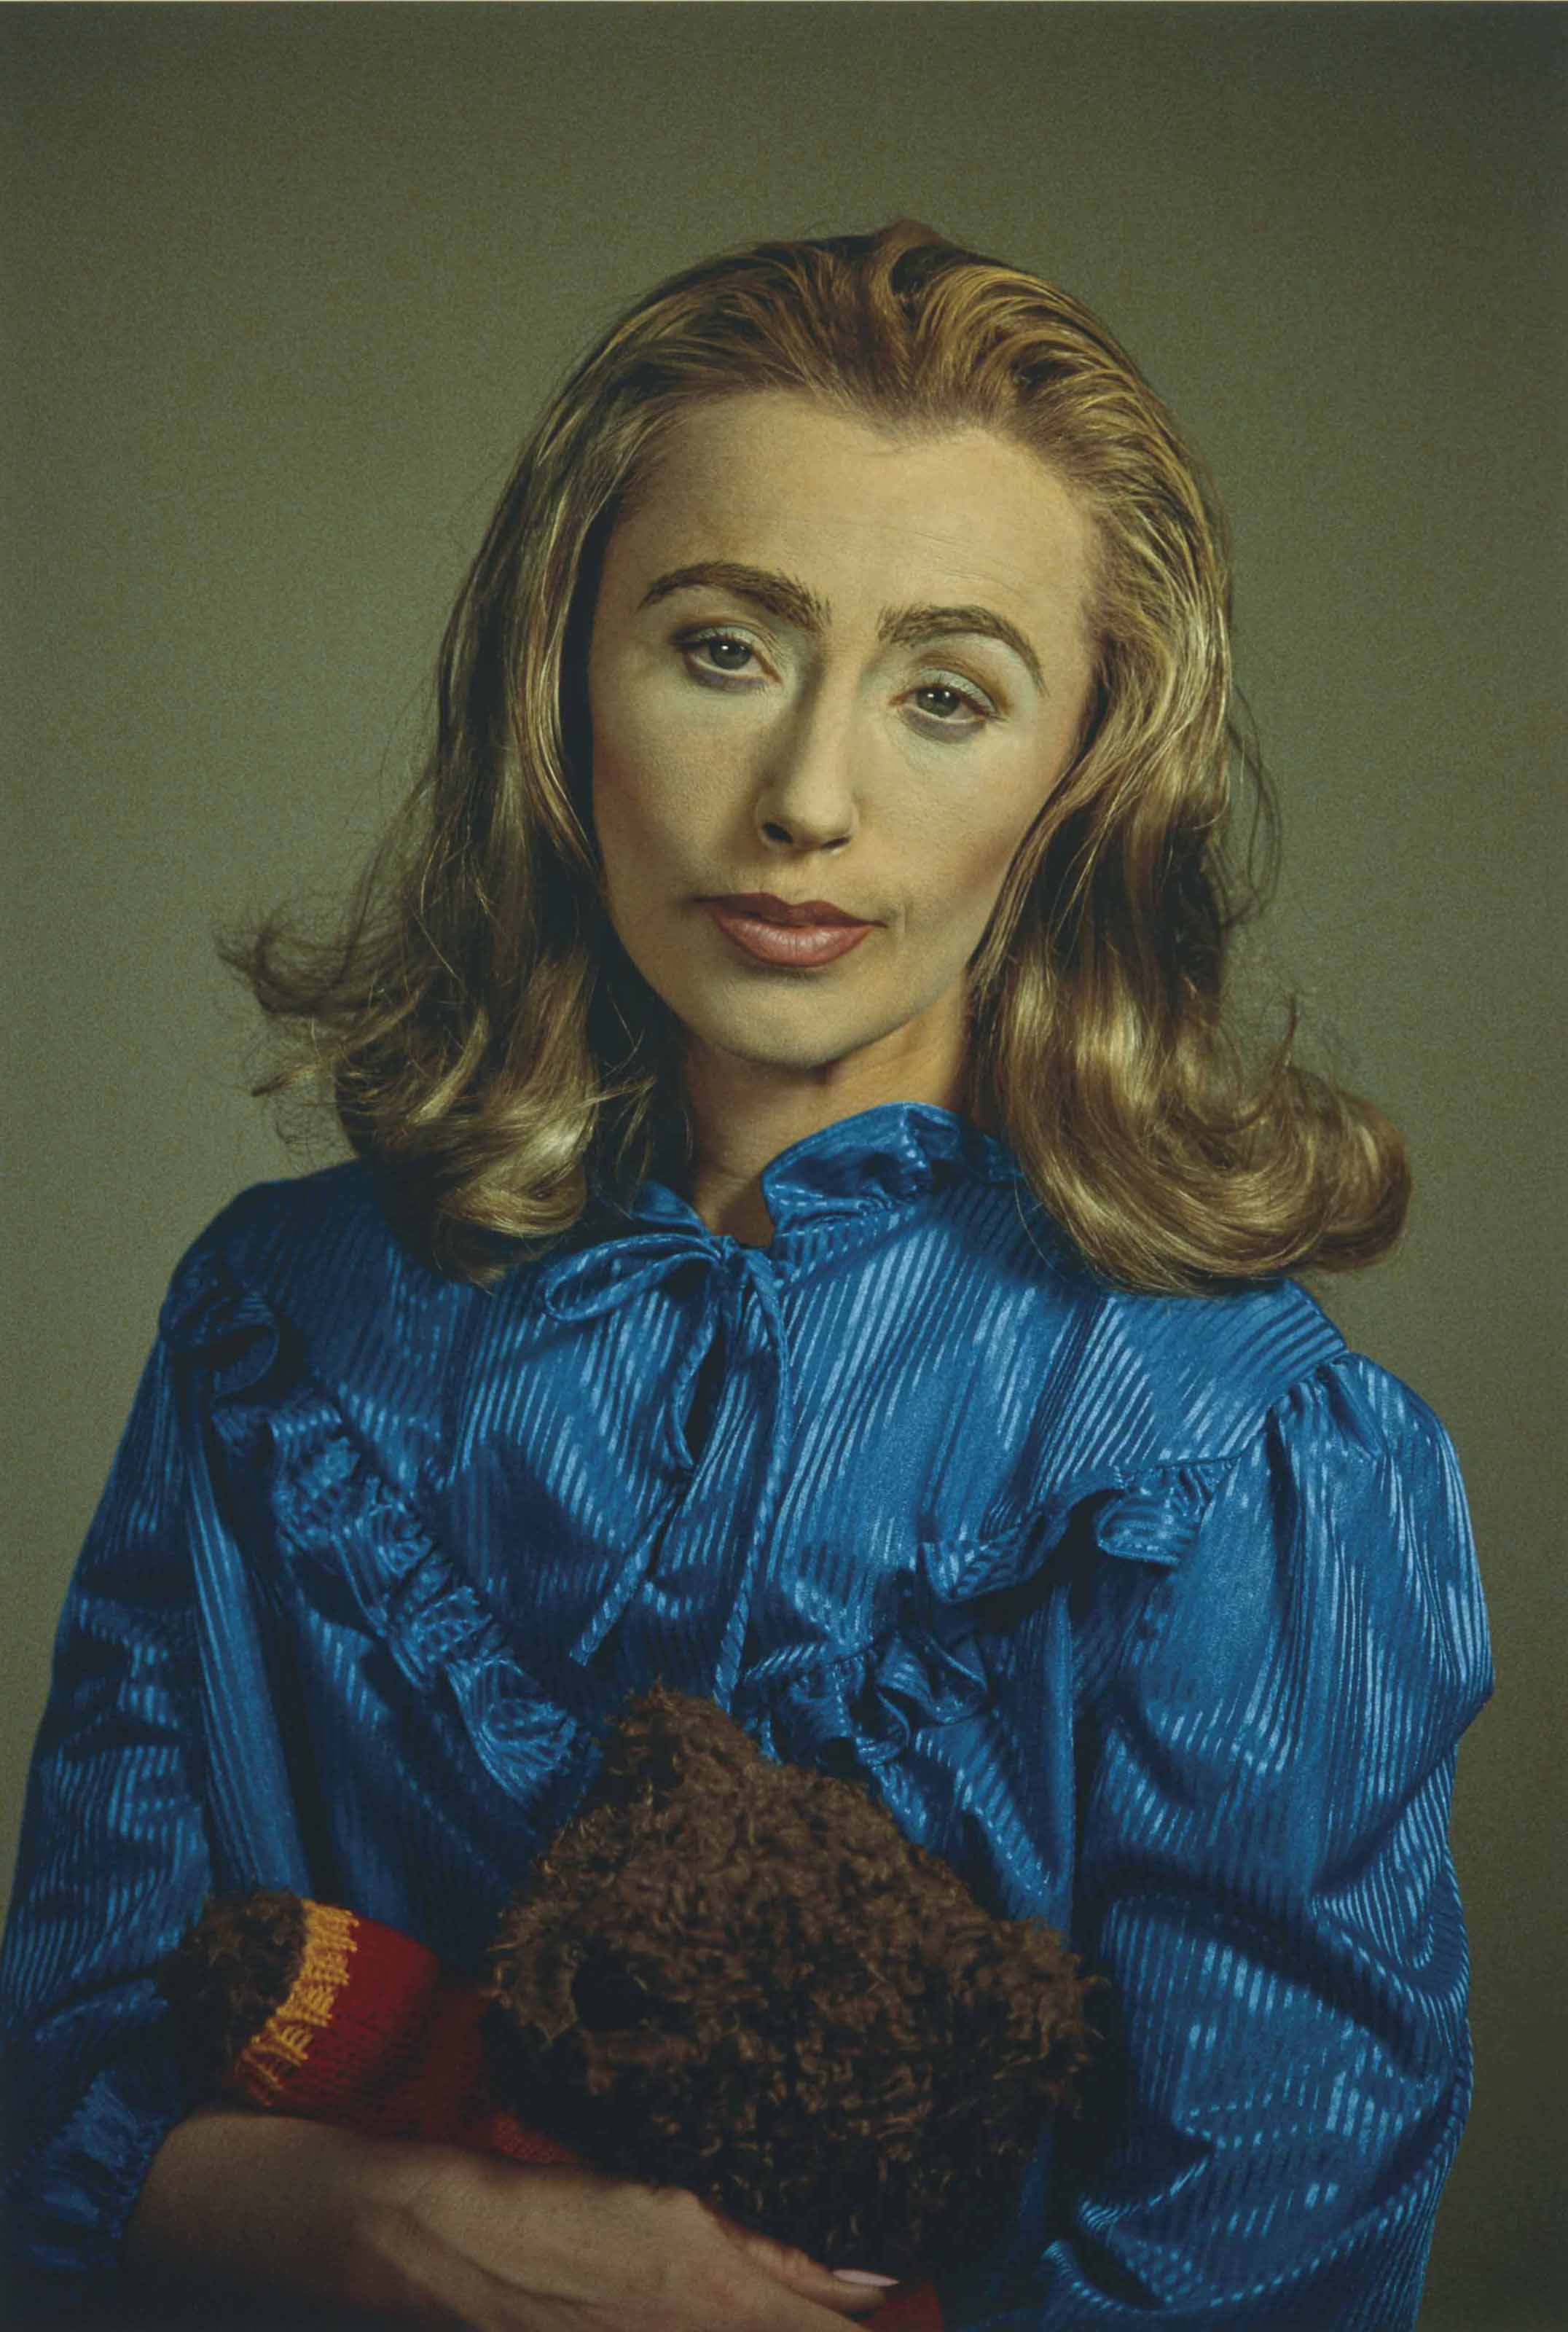 CINDY SHERMAN (NÉE EN 1954)